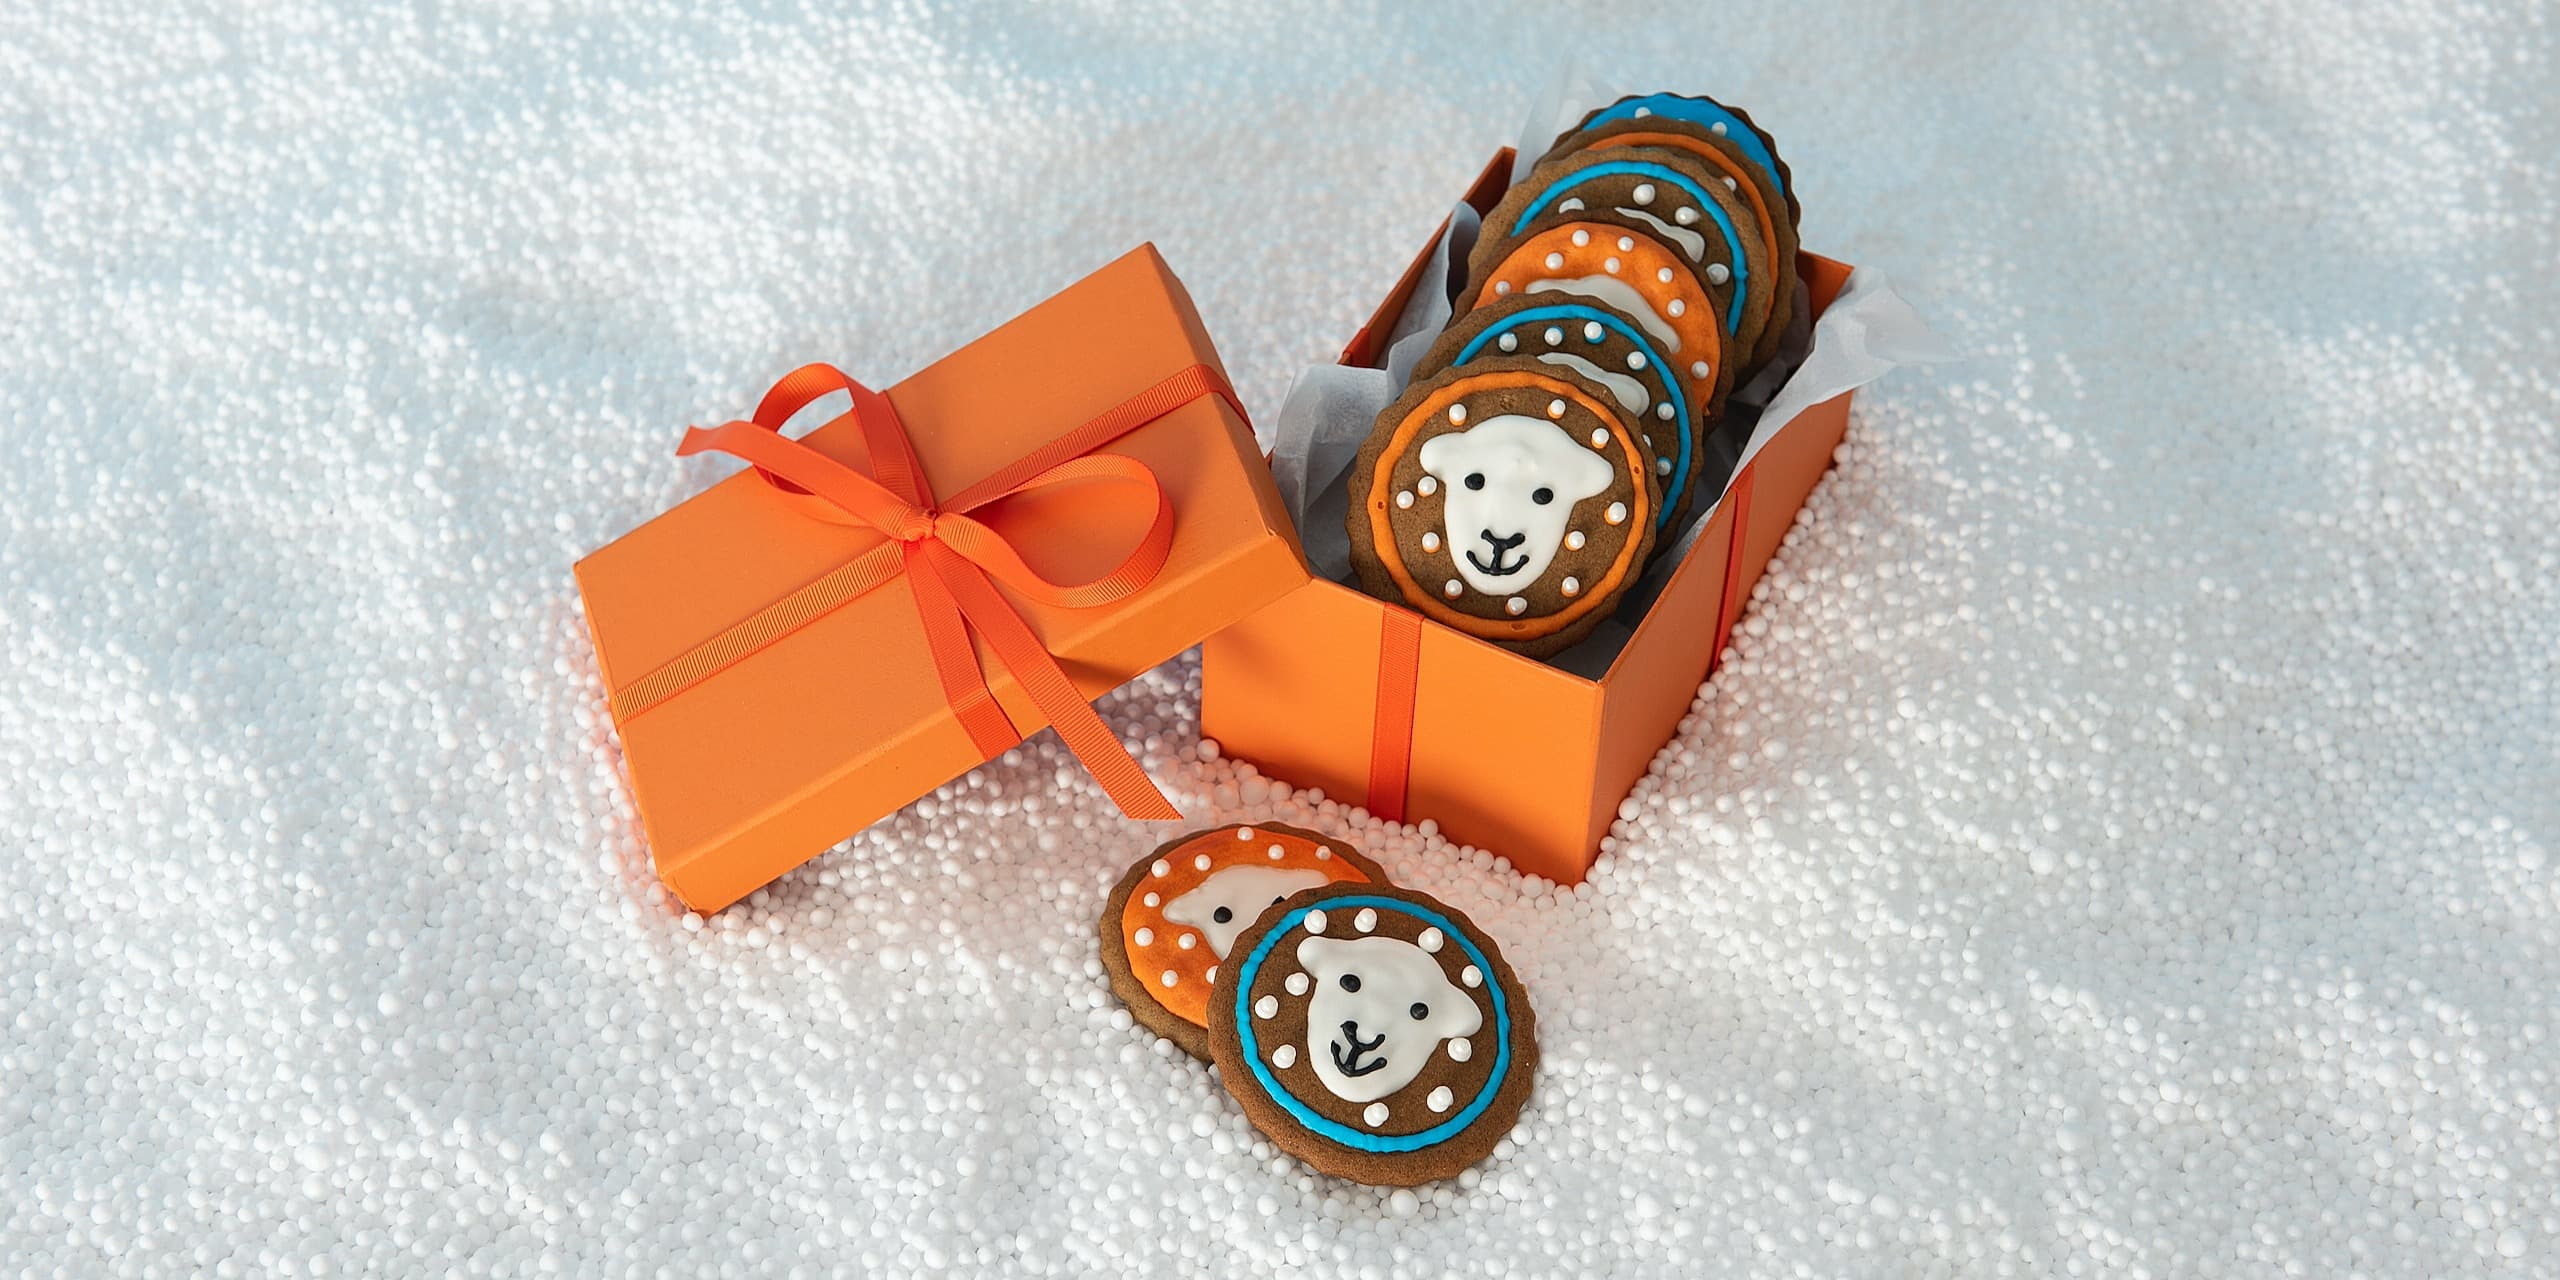 How To Make Herdy Gingerbread Cookies